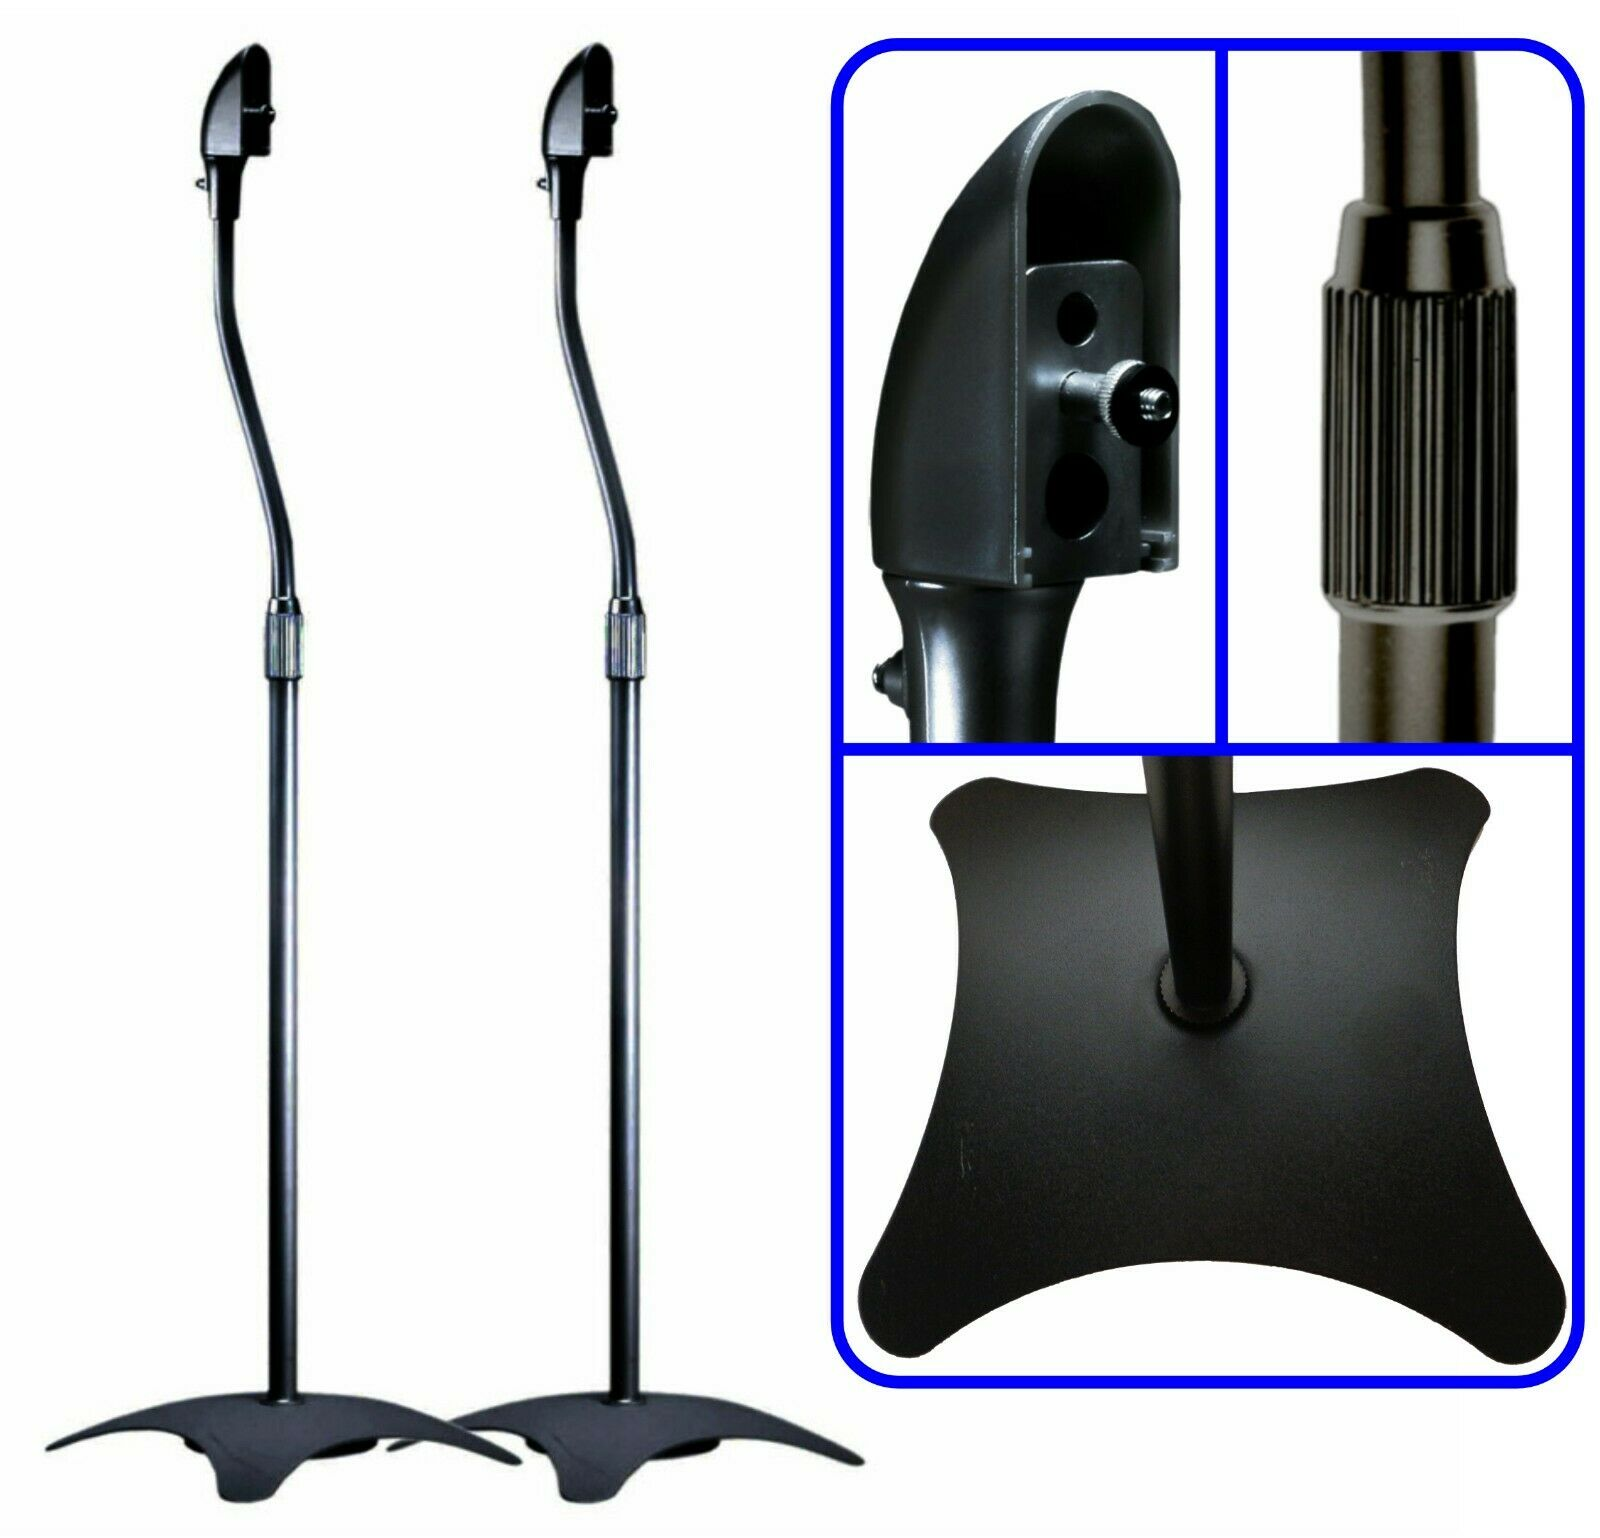 2/Two Black Floor Speaker Stands for Home Theater Surround S